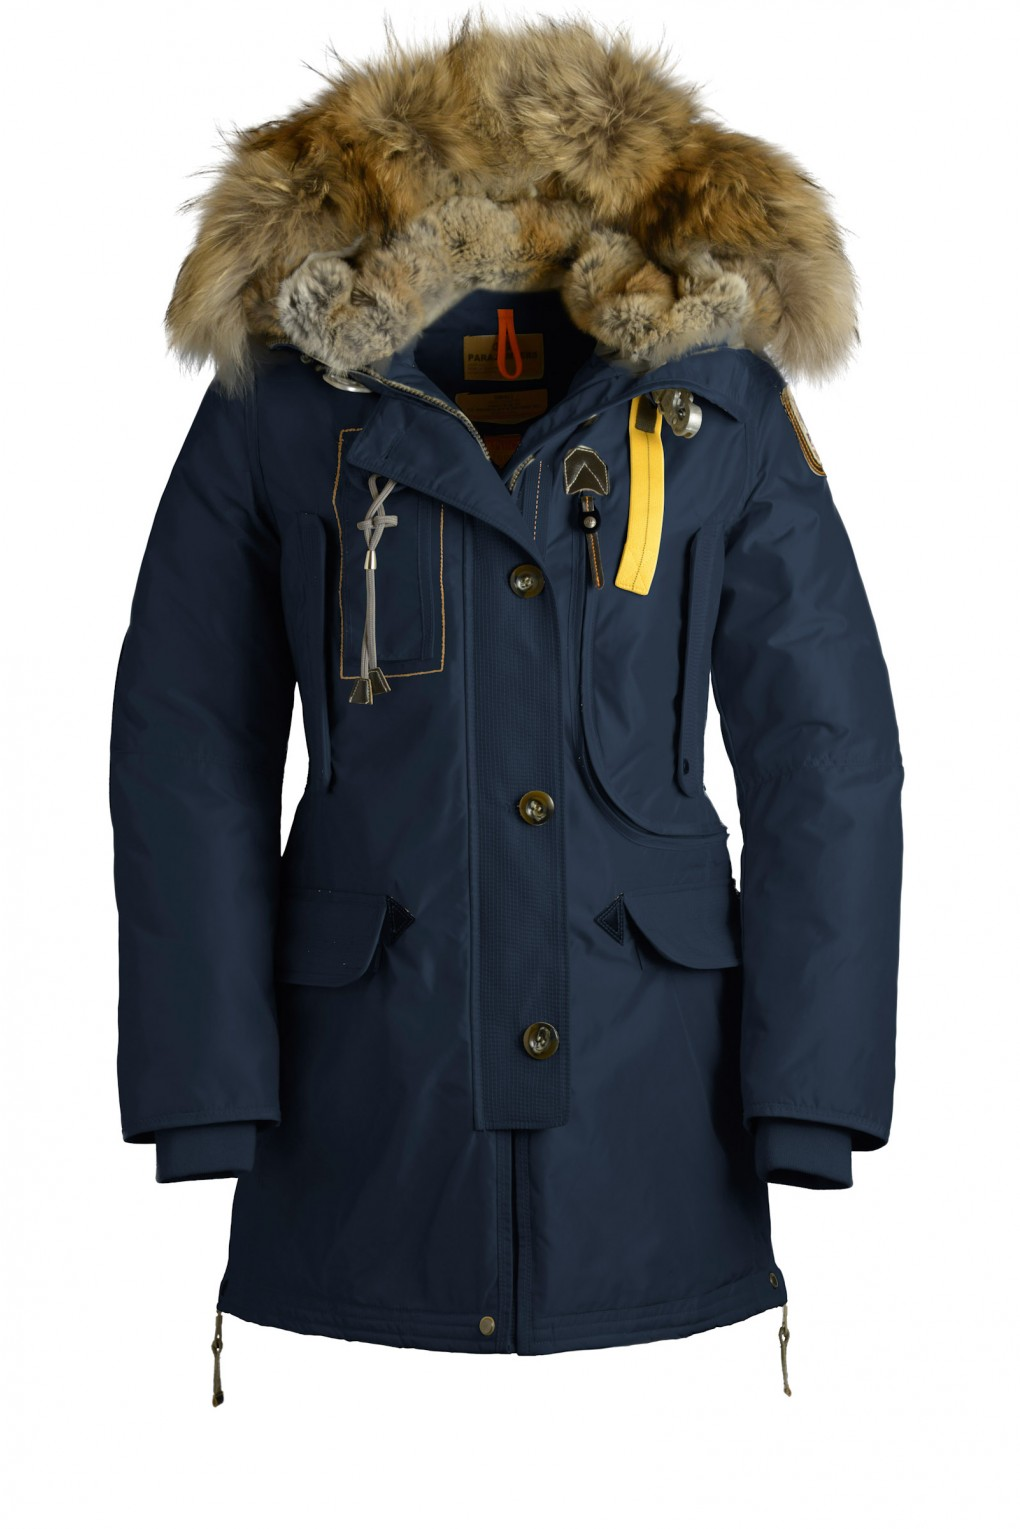 parajumpers KODIAK woman outerwear Marine